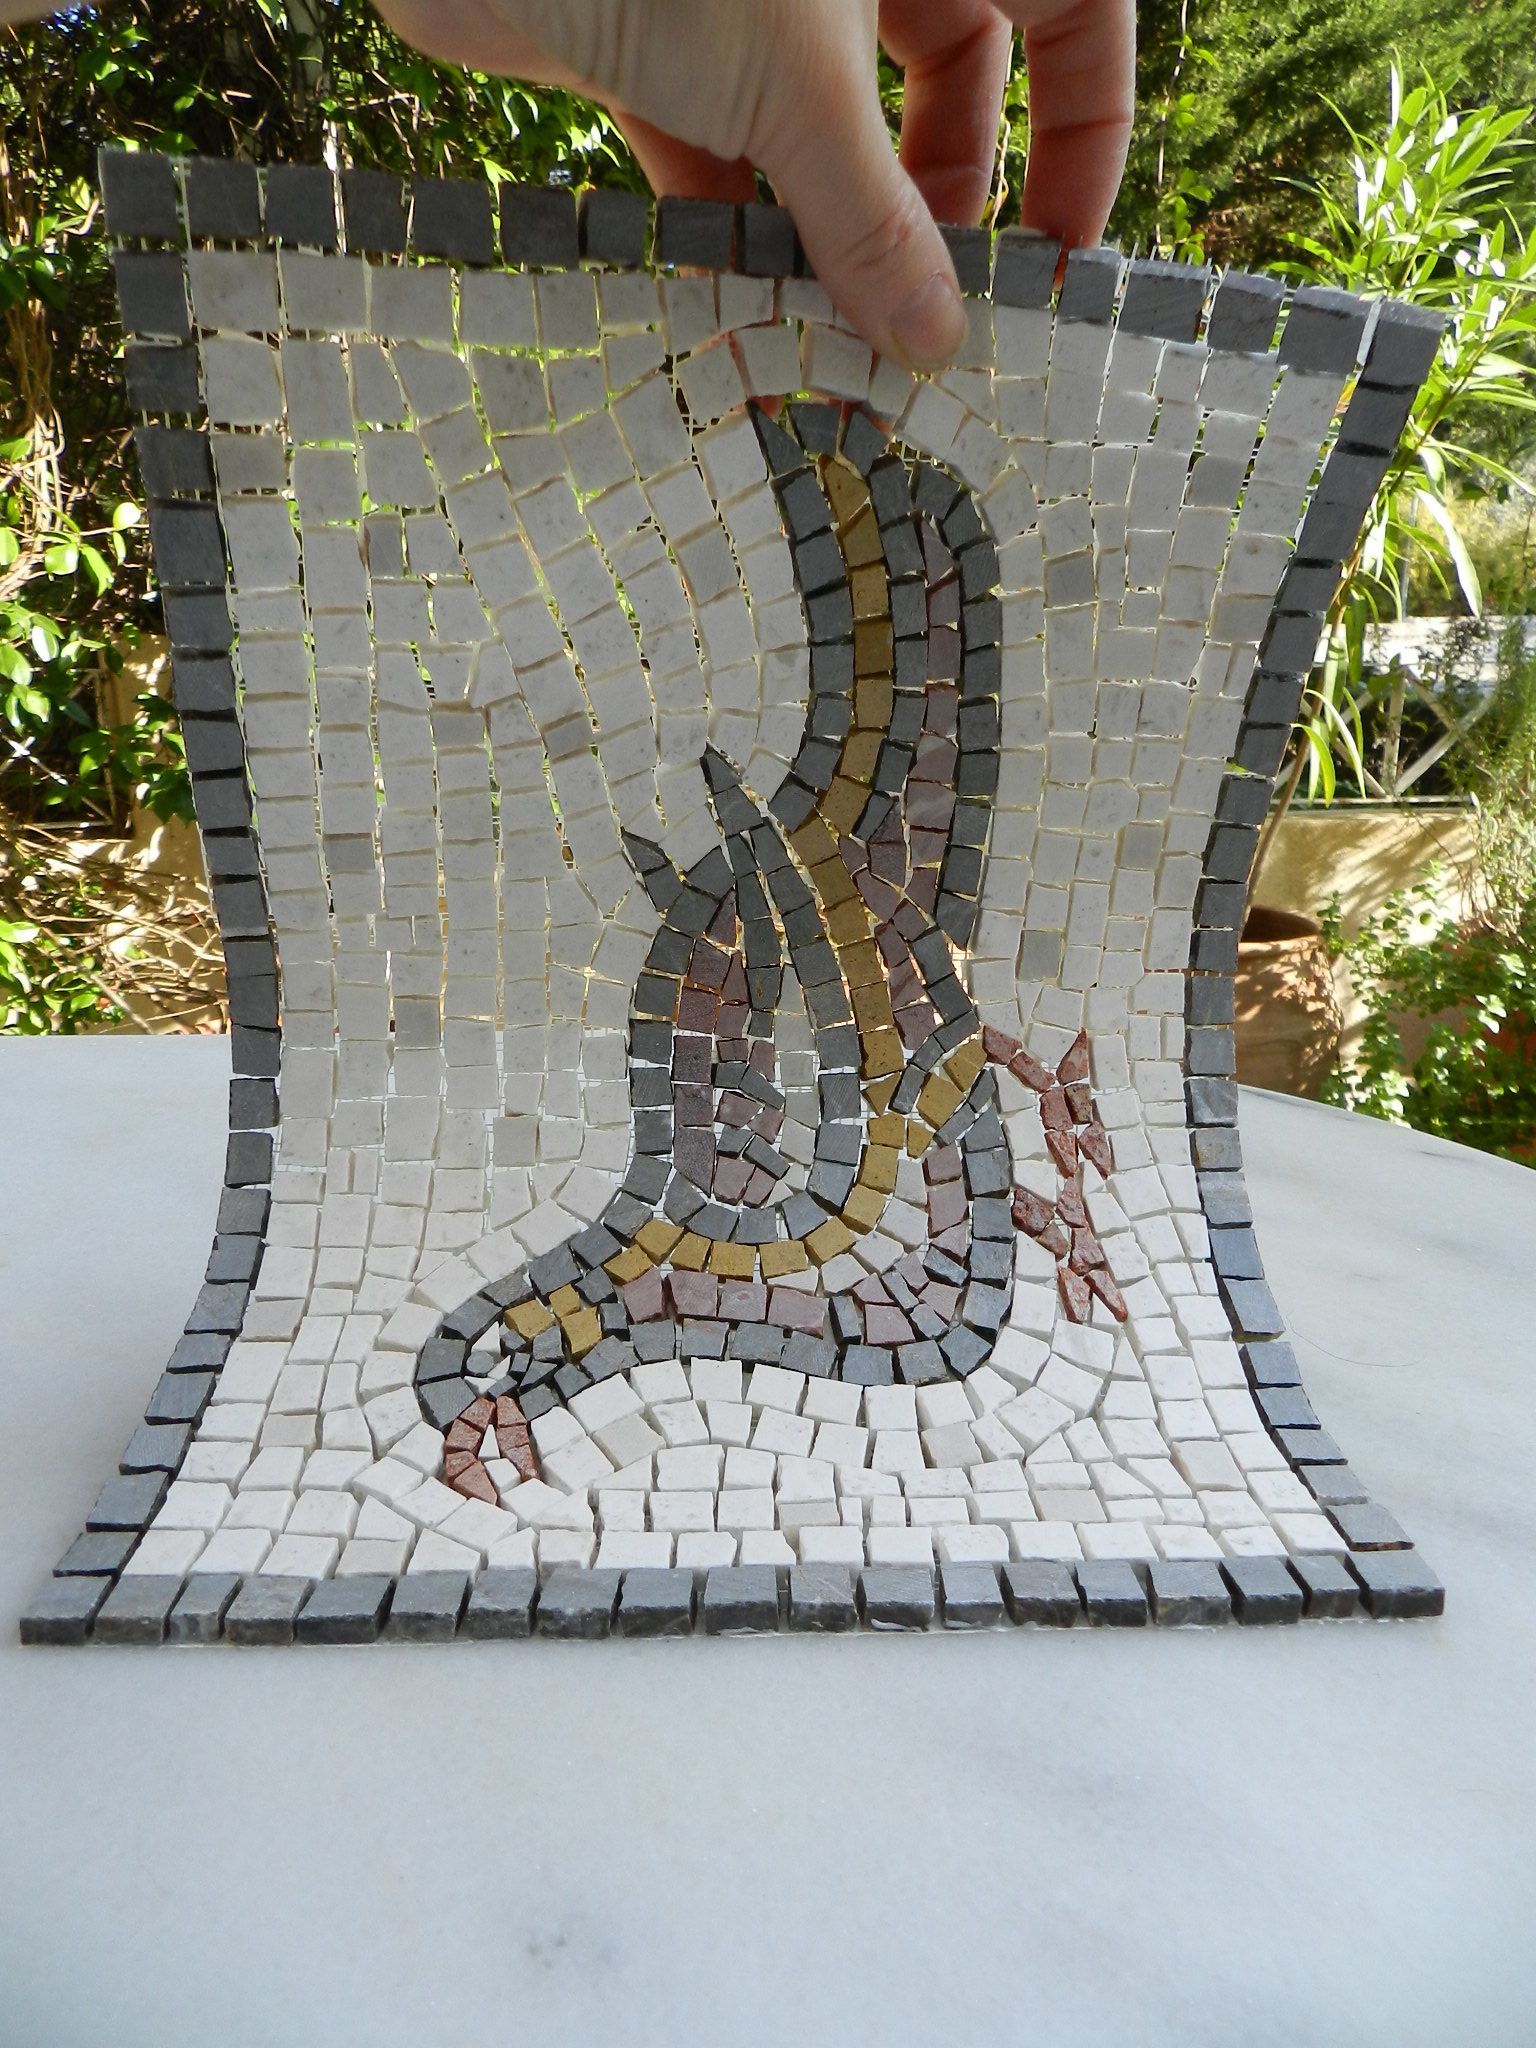 Online coloring mosaics - Making A Mosaic On Mesh Is Explained In Easy To Follow Steps With Clear Illustrations In